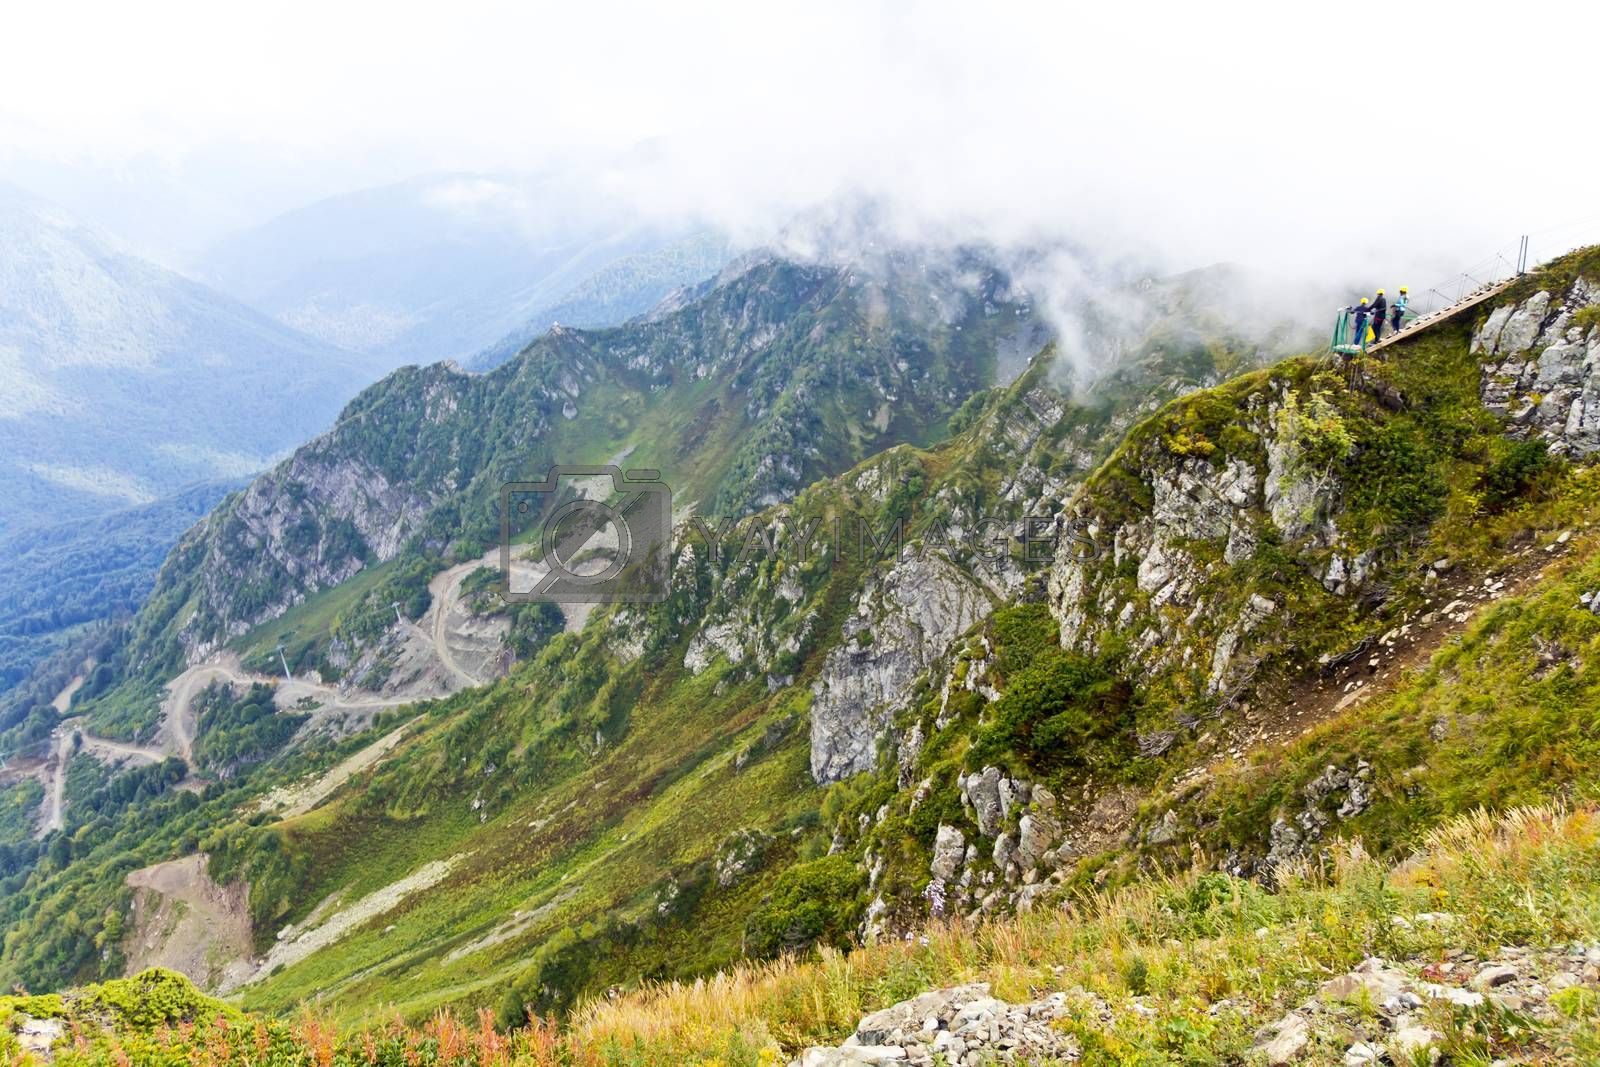 Summer picturesque landscape with Russian Caucasus rockies mountains